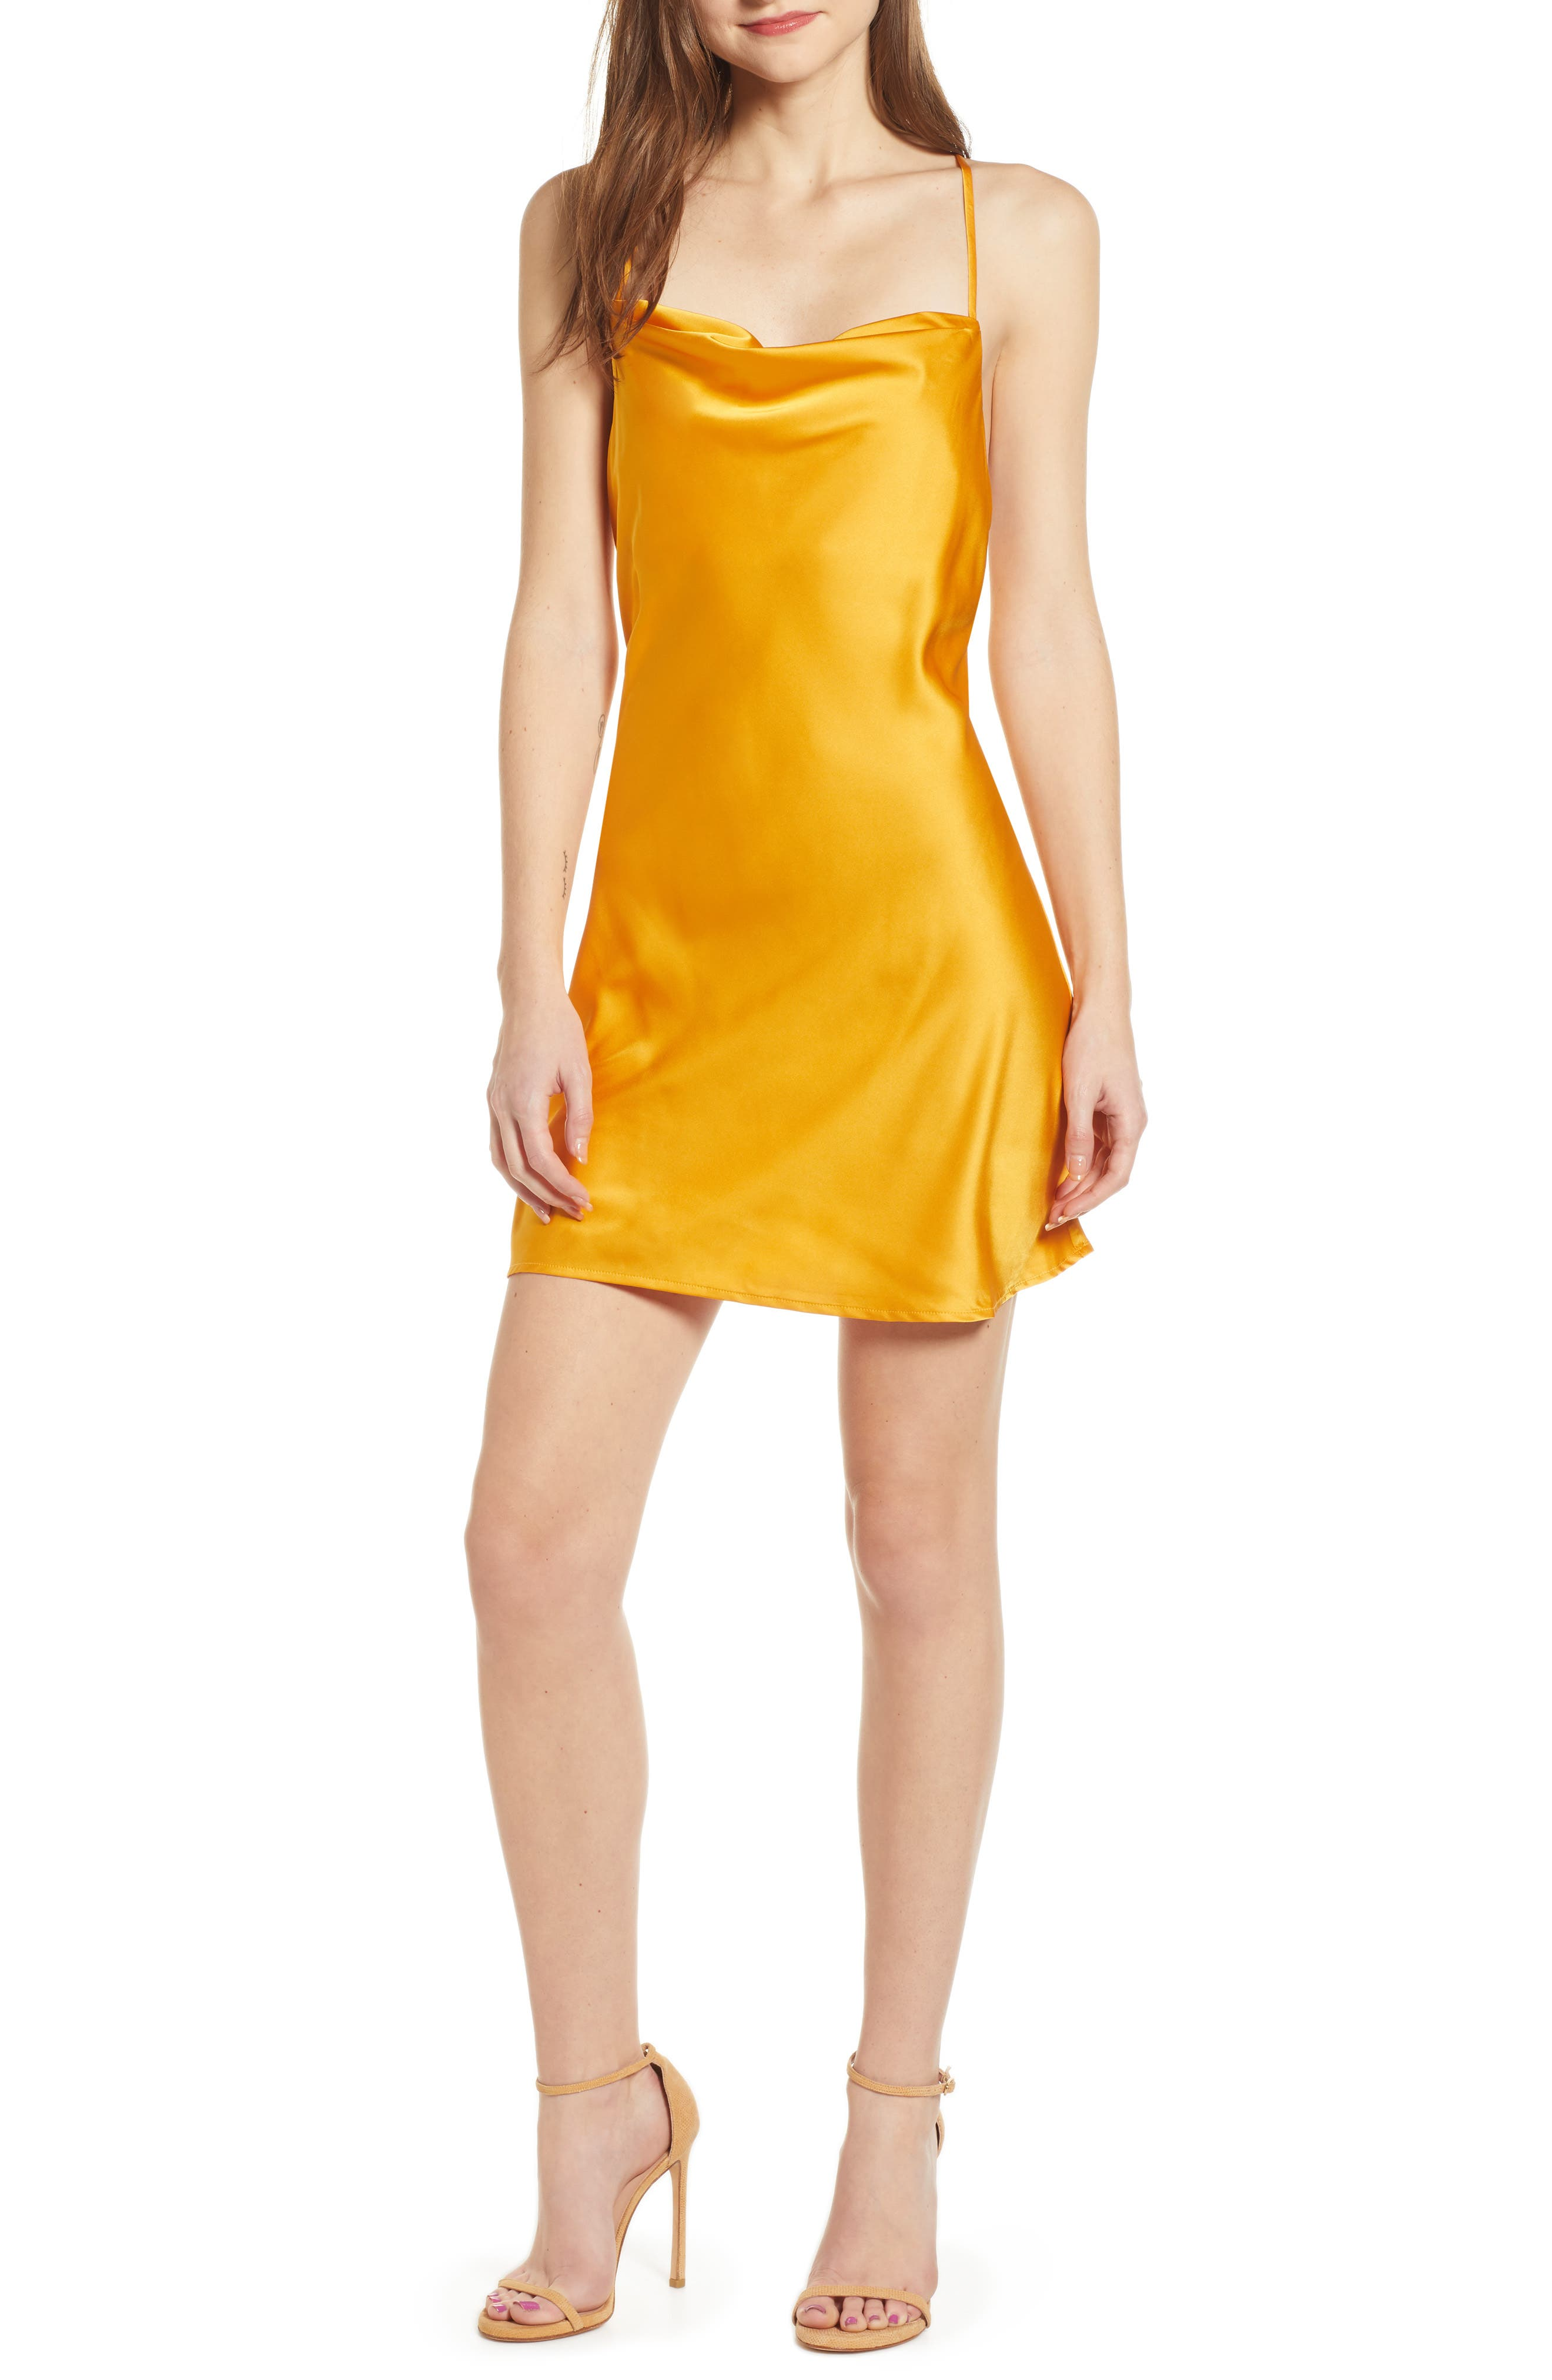 J.o.a. Cowl Minidress, Orange